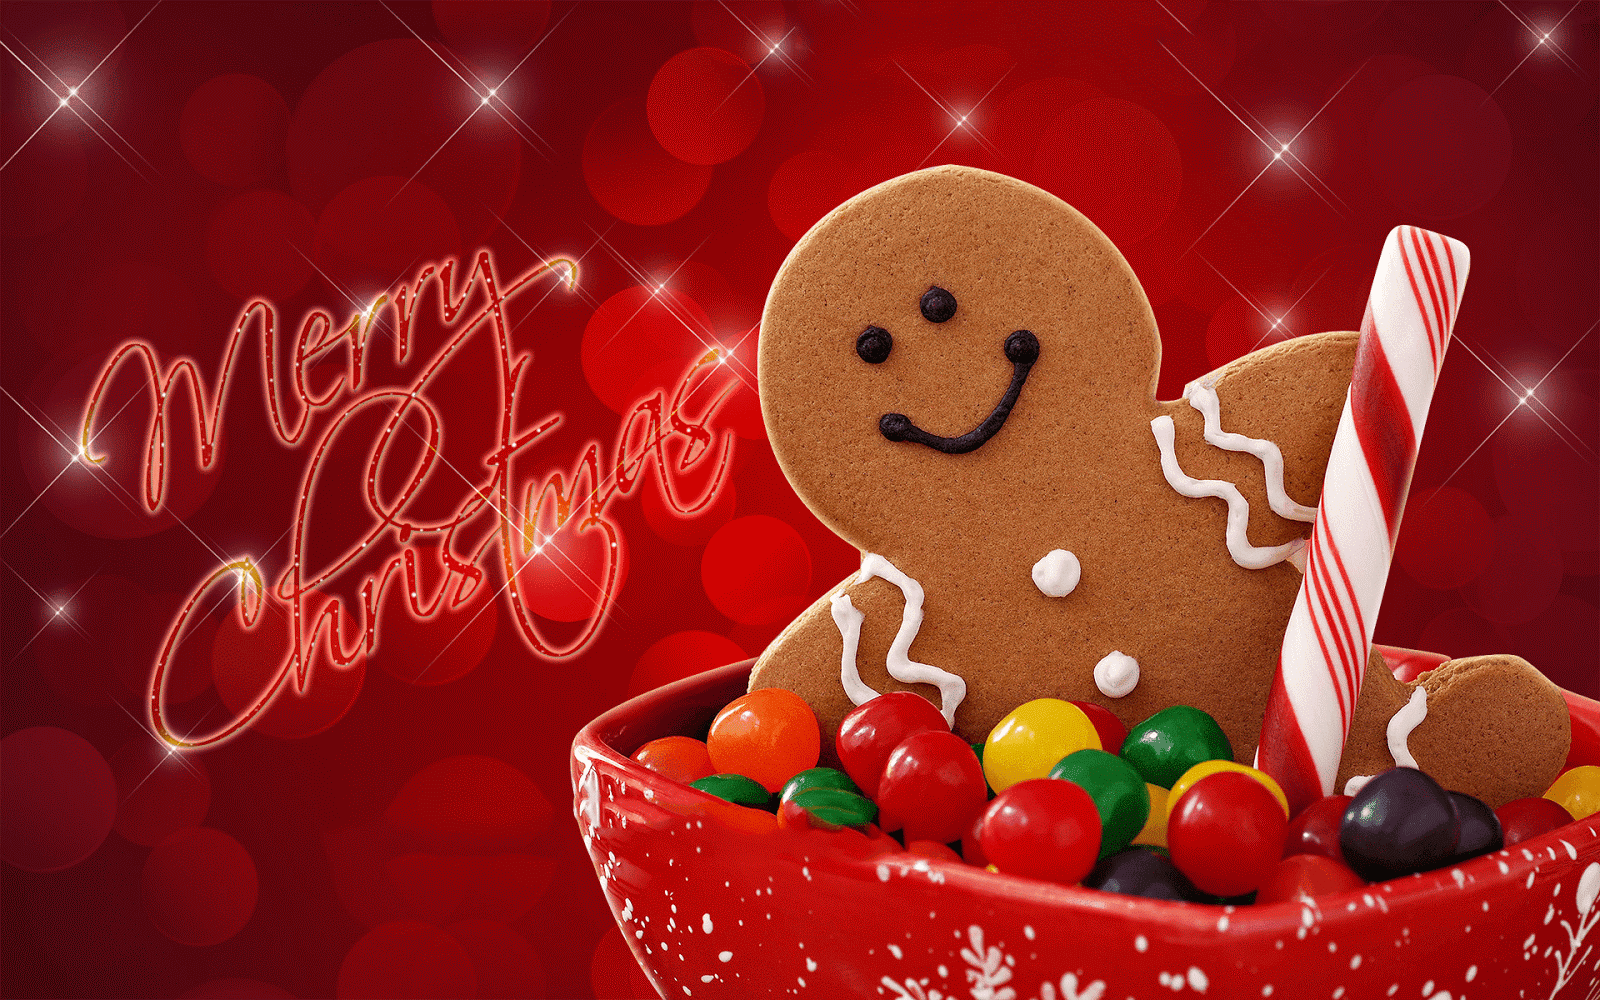 Christmas Day Wallpapers HD Download Free 1080p ...